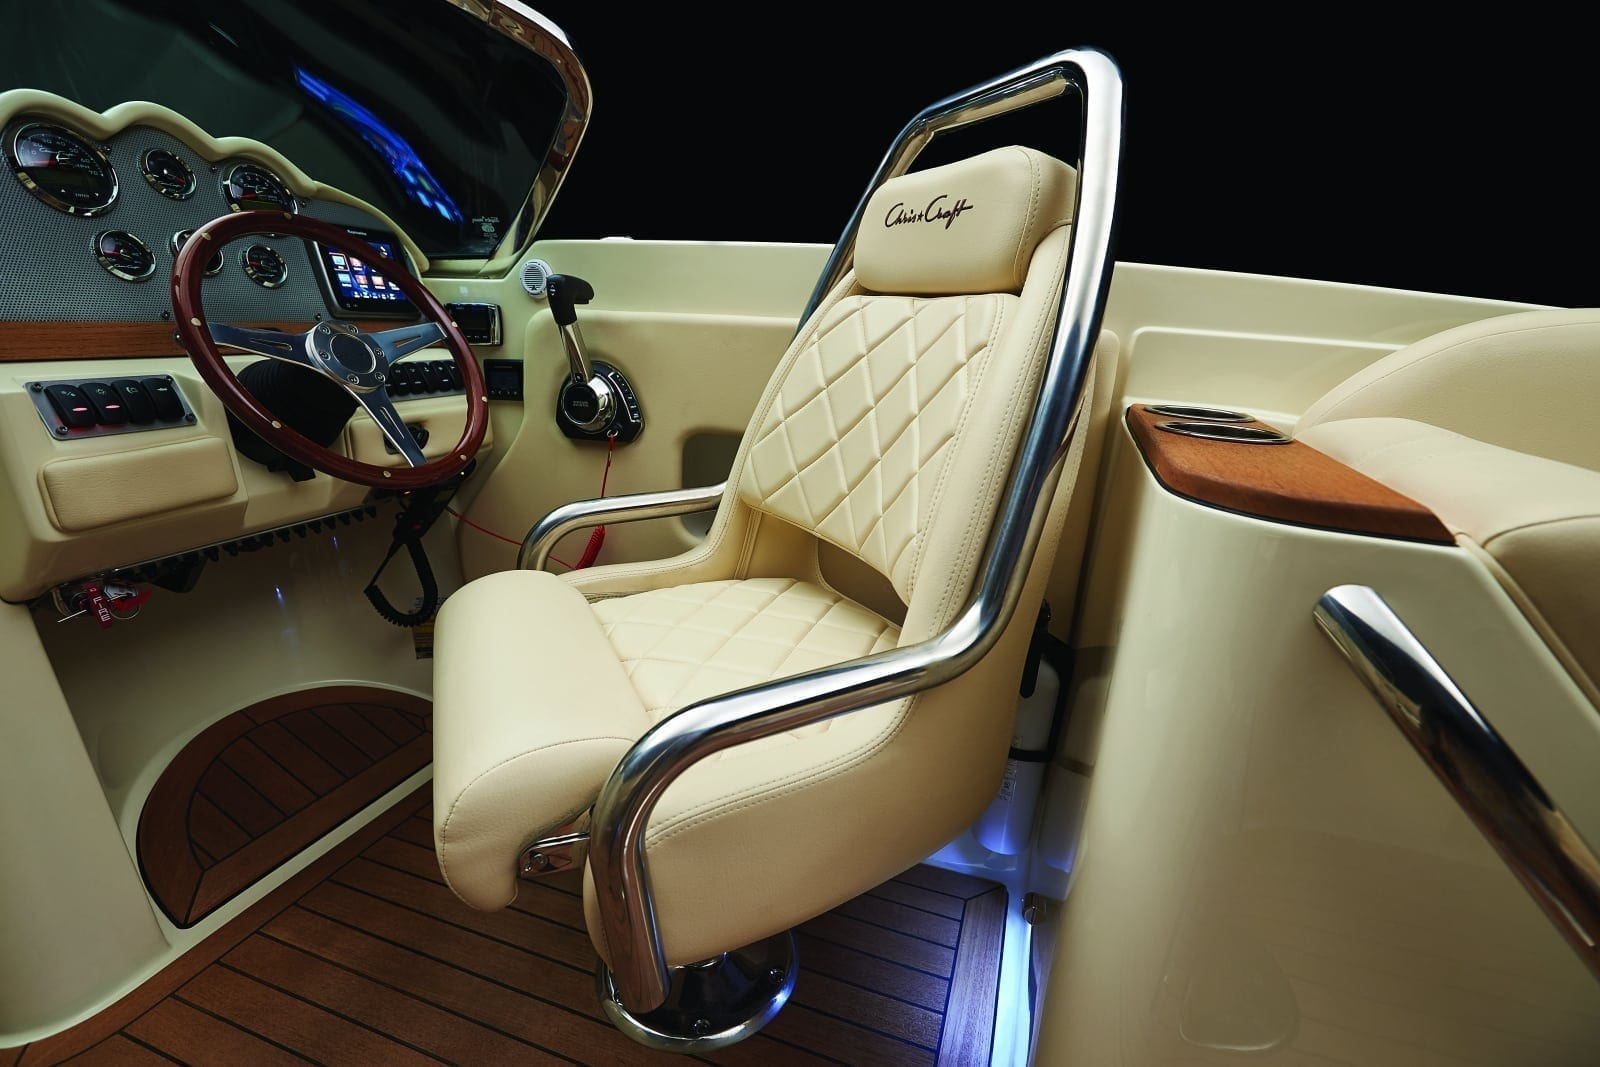 Chris Craft Launch 27 Captains Chair